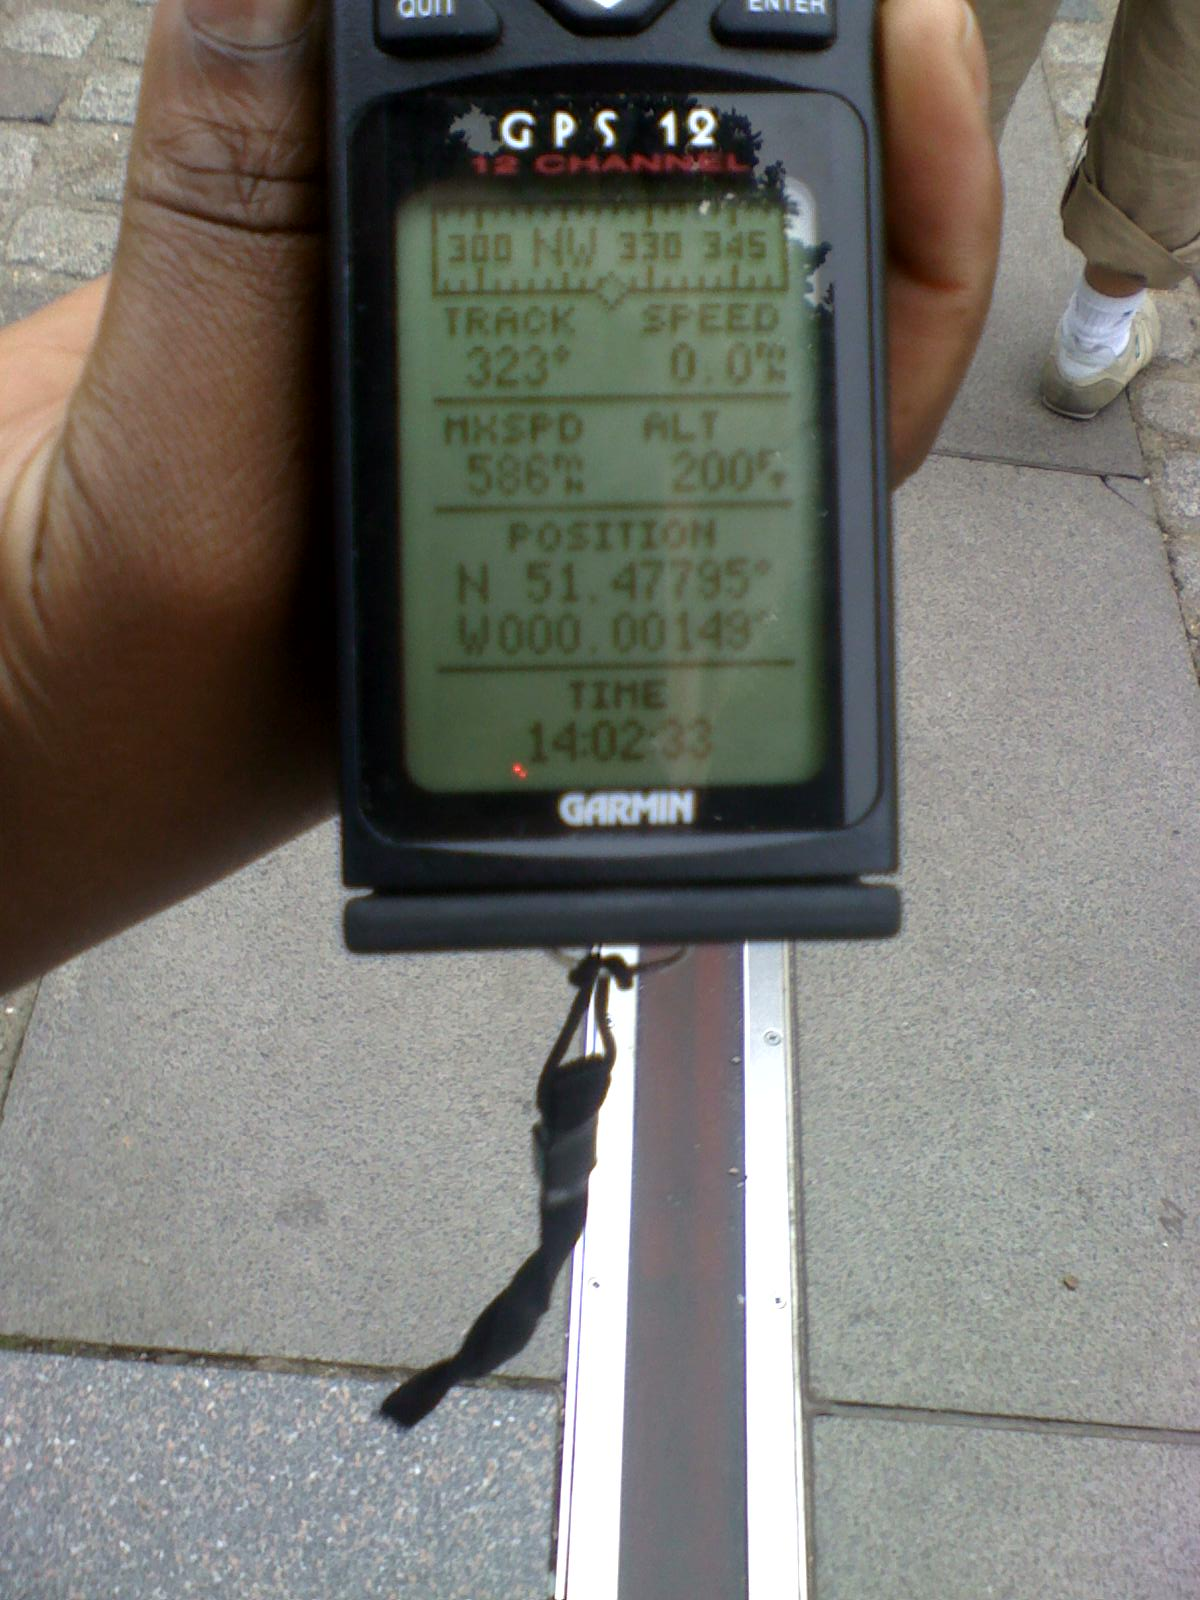 GPS on the Greenwich Prime Meridian, showing 0.00149W